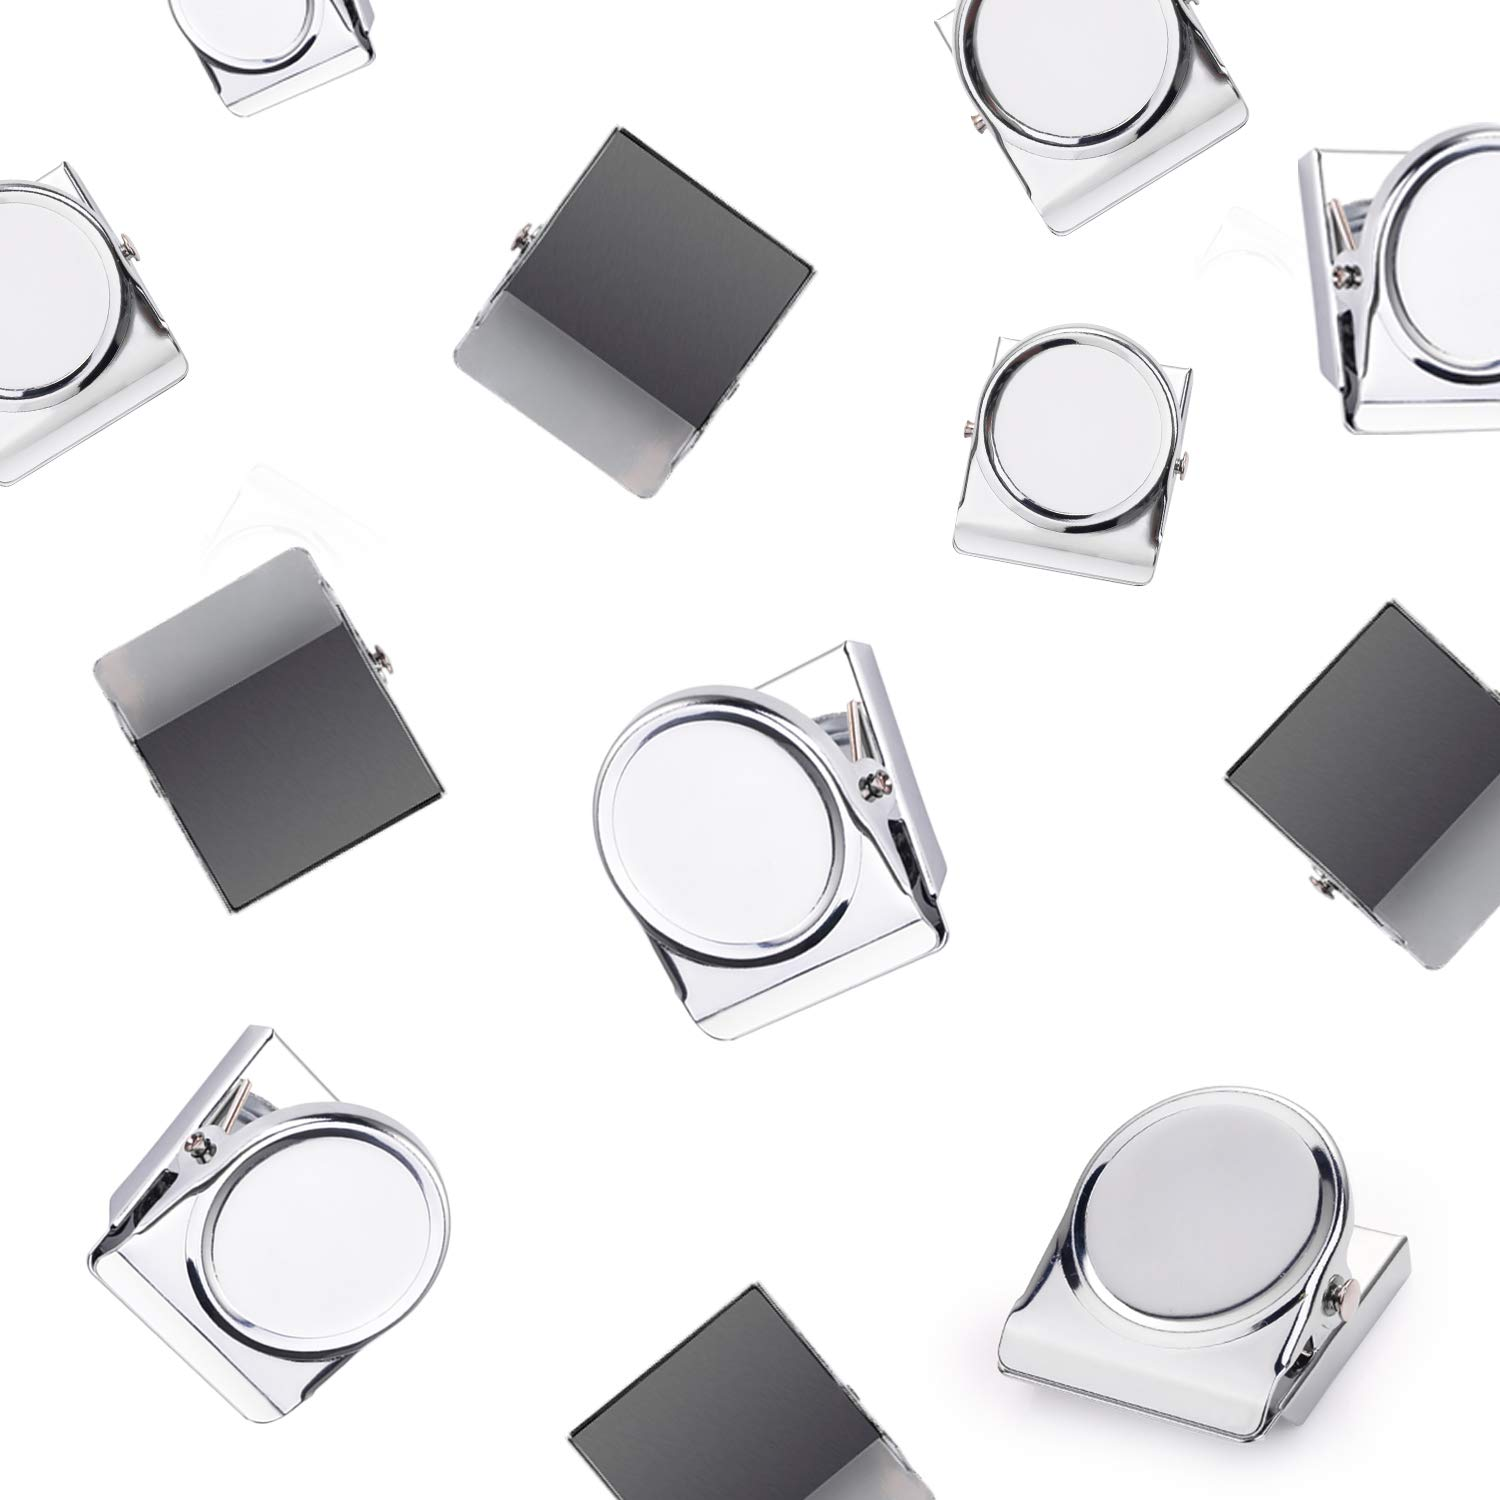 Bonus Magnetic Notepad Upgraded 10 Pack Best Value Set Strong Scratch-Free Refrigerator Magnet Clips for Organizing Decorating /& All of Lifes Needs